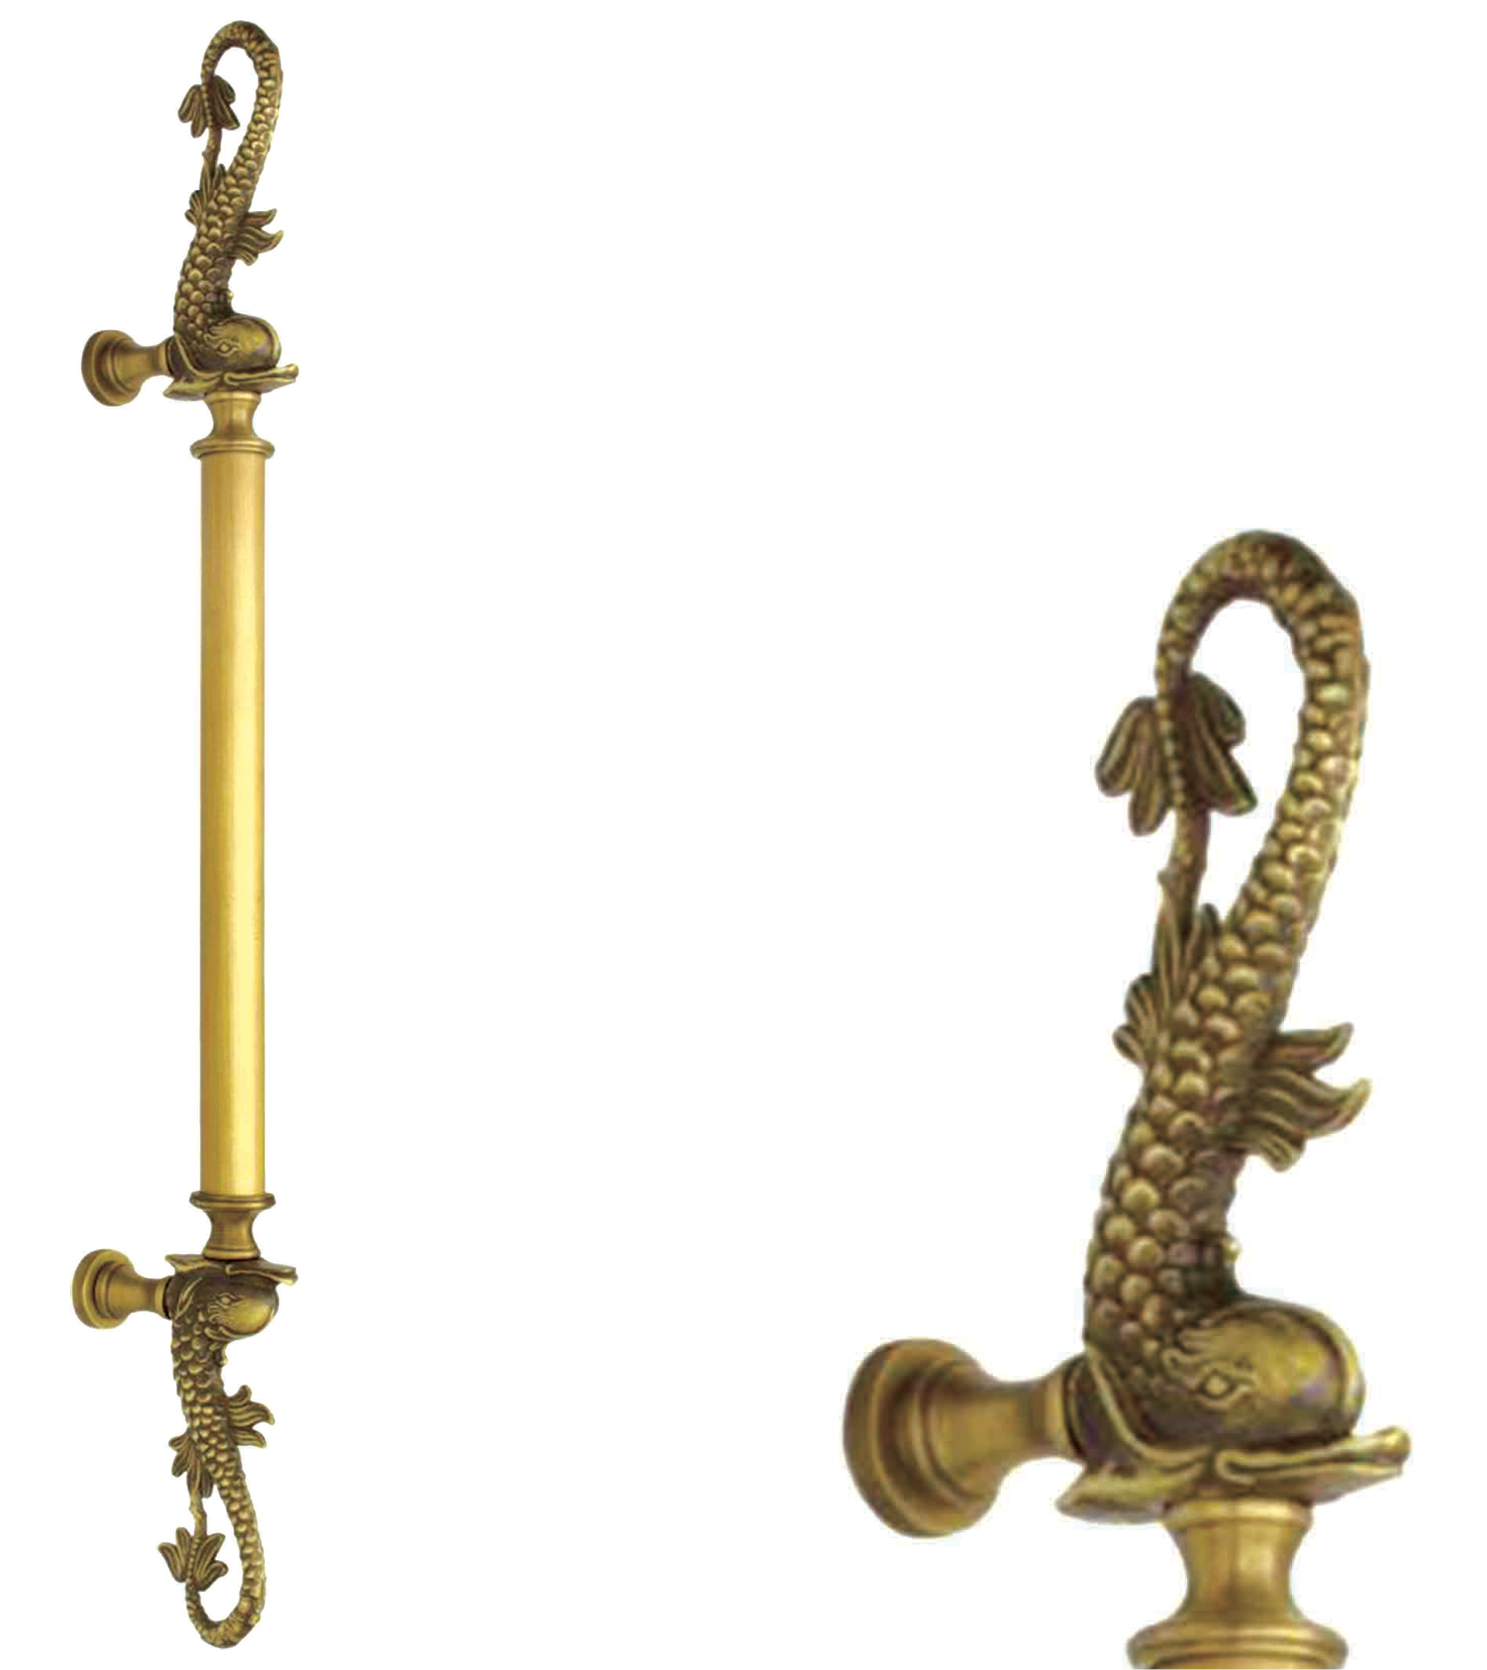 Classic main door pull handle and locks for glass and wooden doors  for apartments